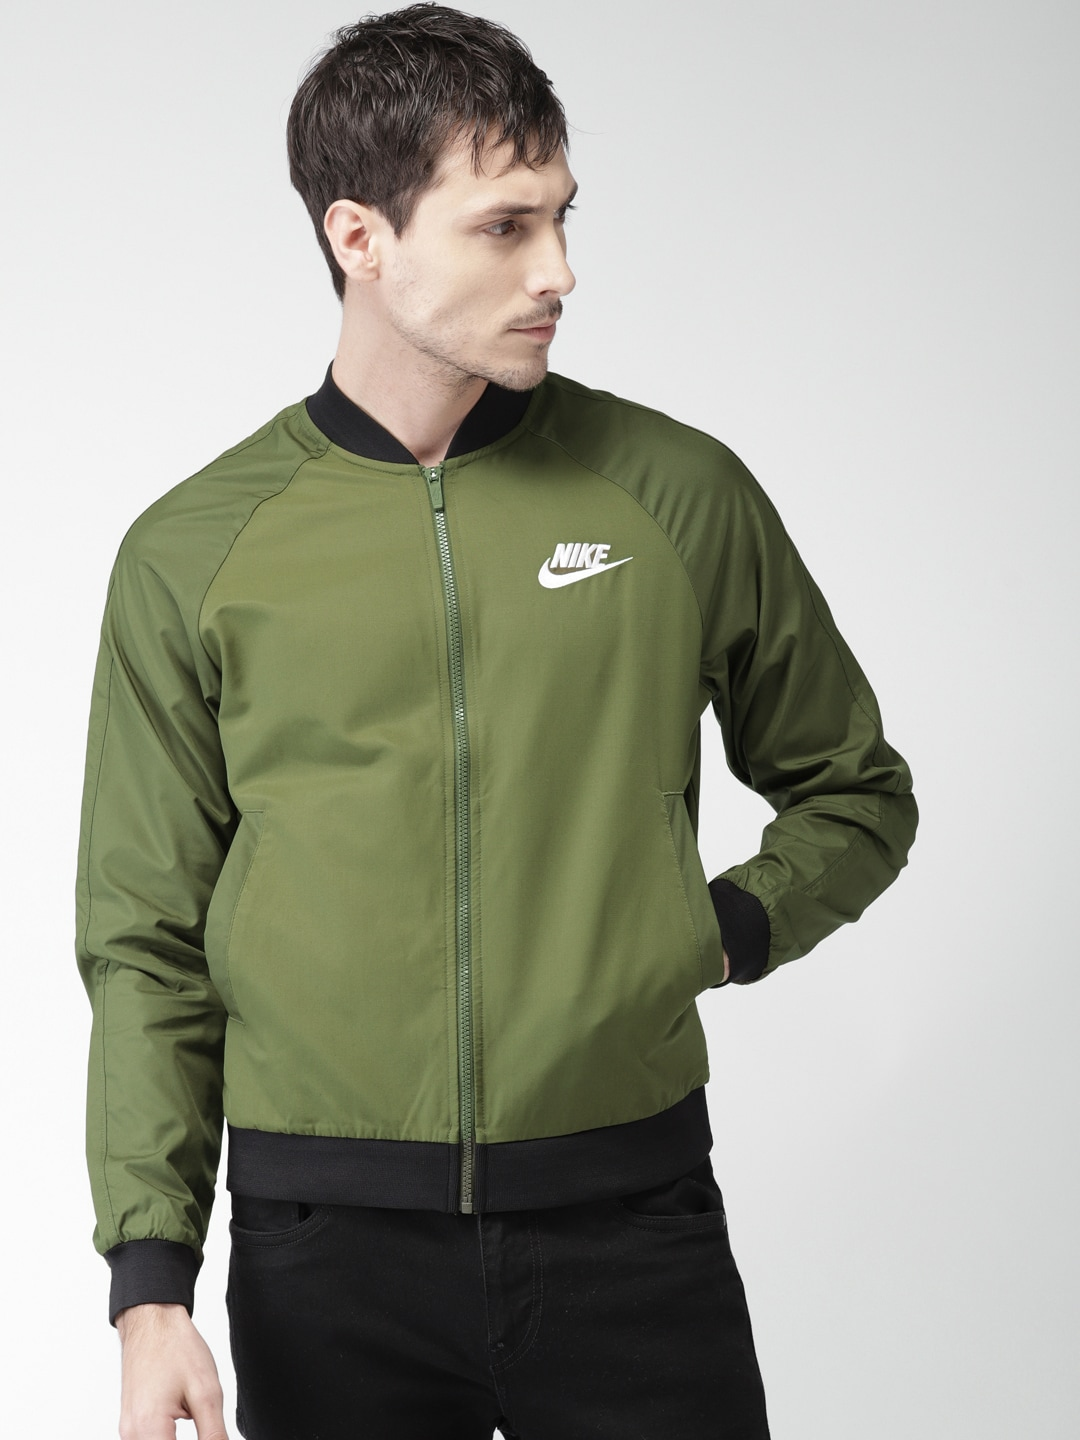 dab64319f Nike Men Olive Green AS M NSW JKT WVN PLAYERS Bomber Jacket